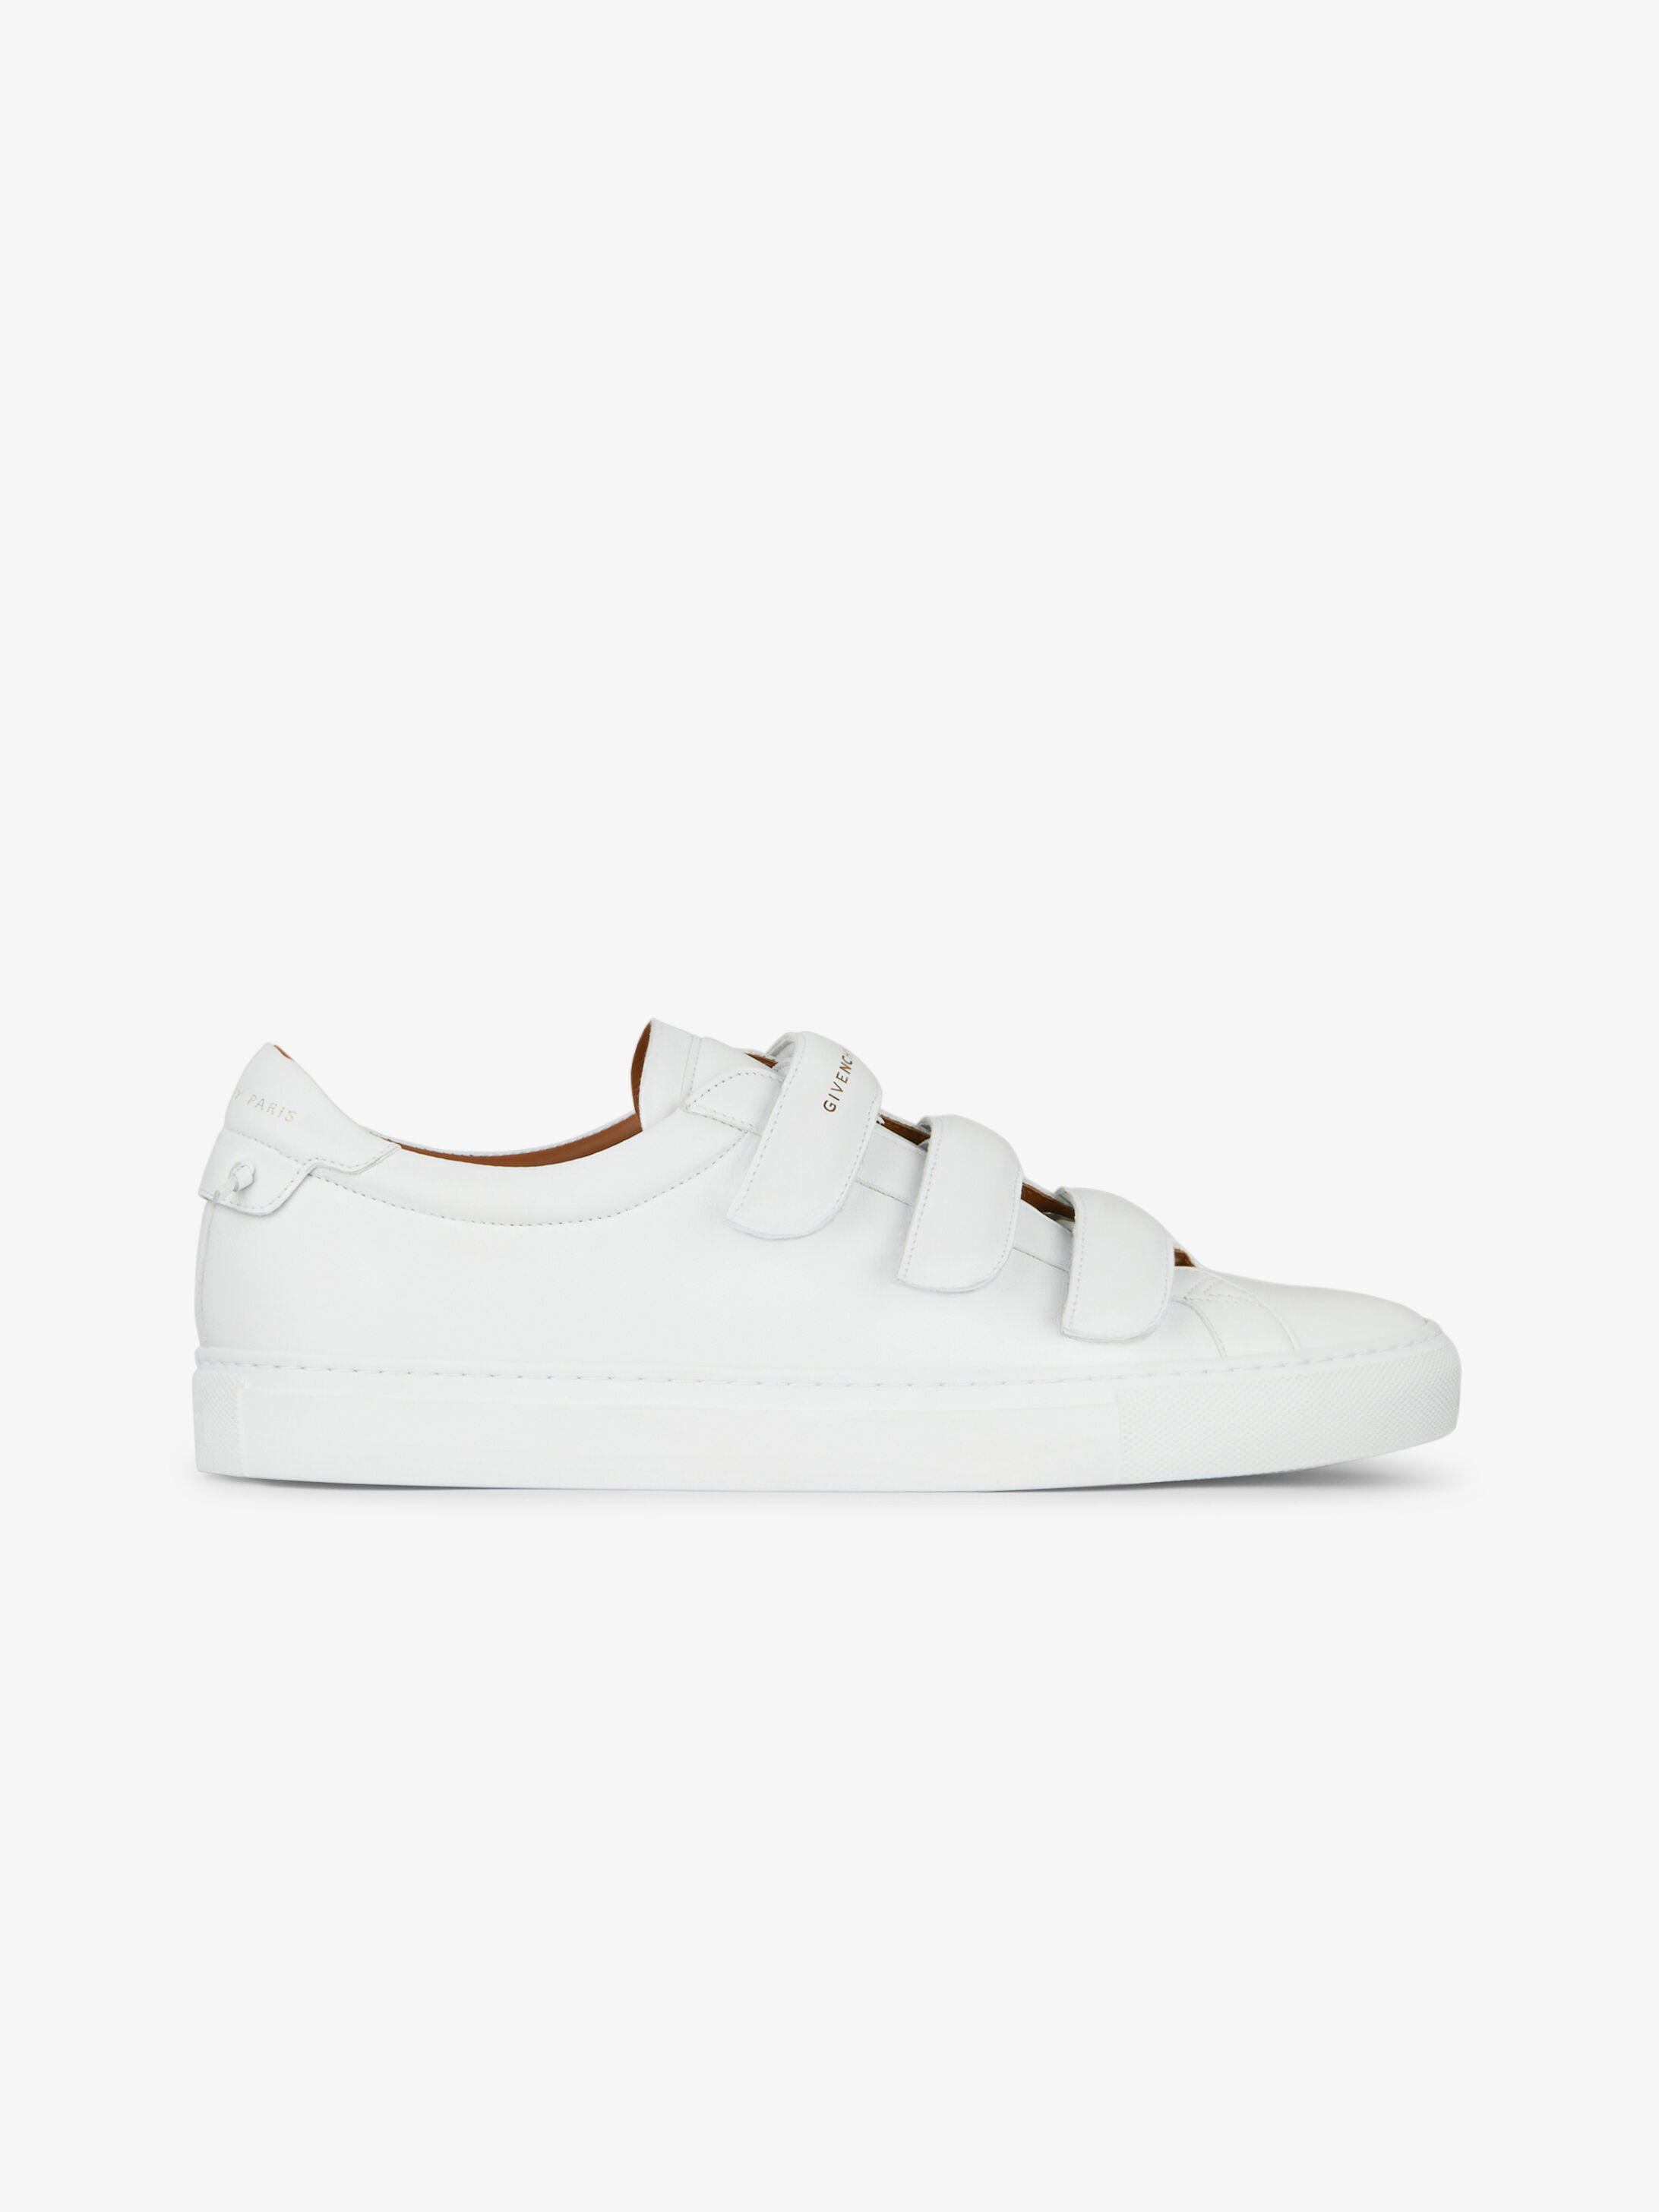 givenchy shoes online